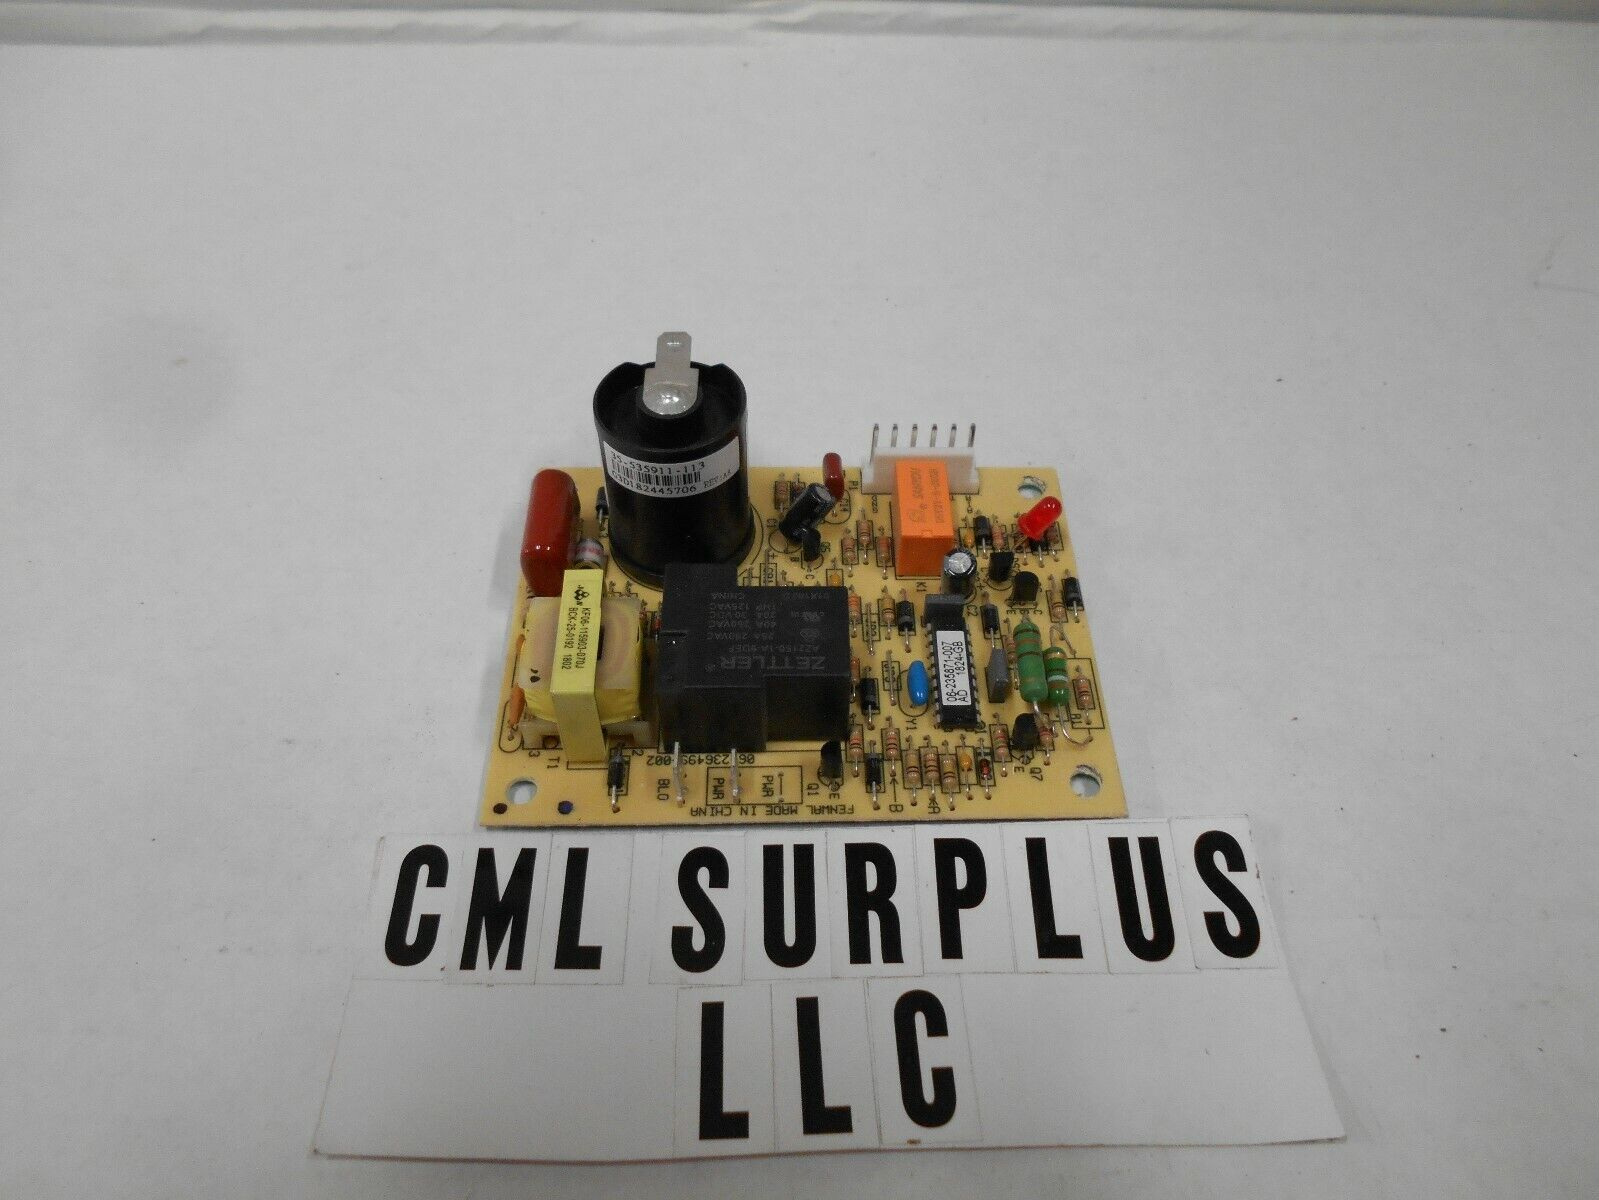 *SUBURBAN FURNANCE CIRCUIT BOARD 521099 HEATER FAN CONTROL IGNITION 520820 *137*